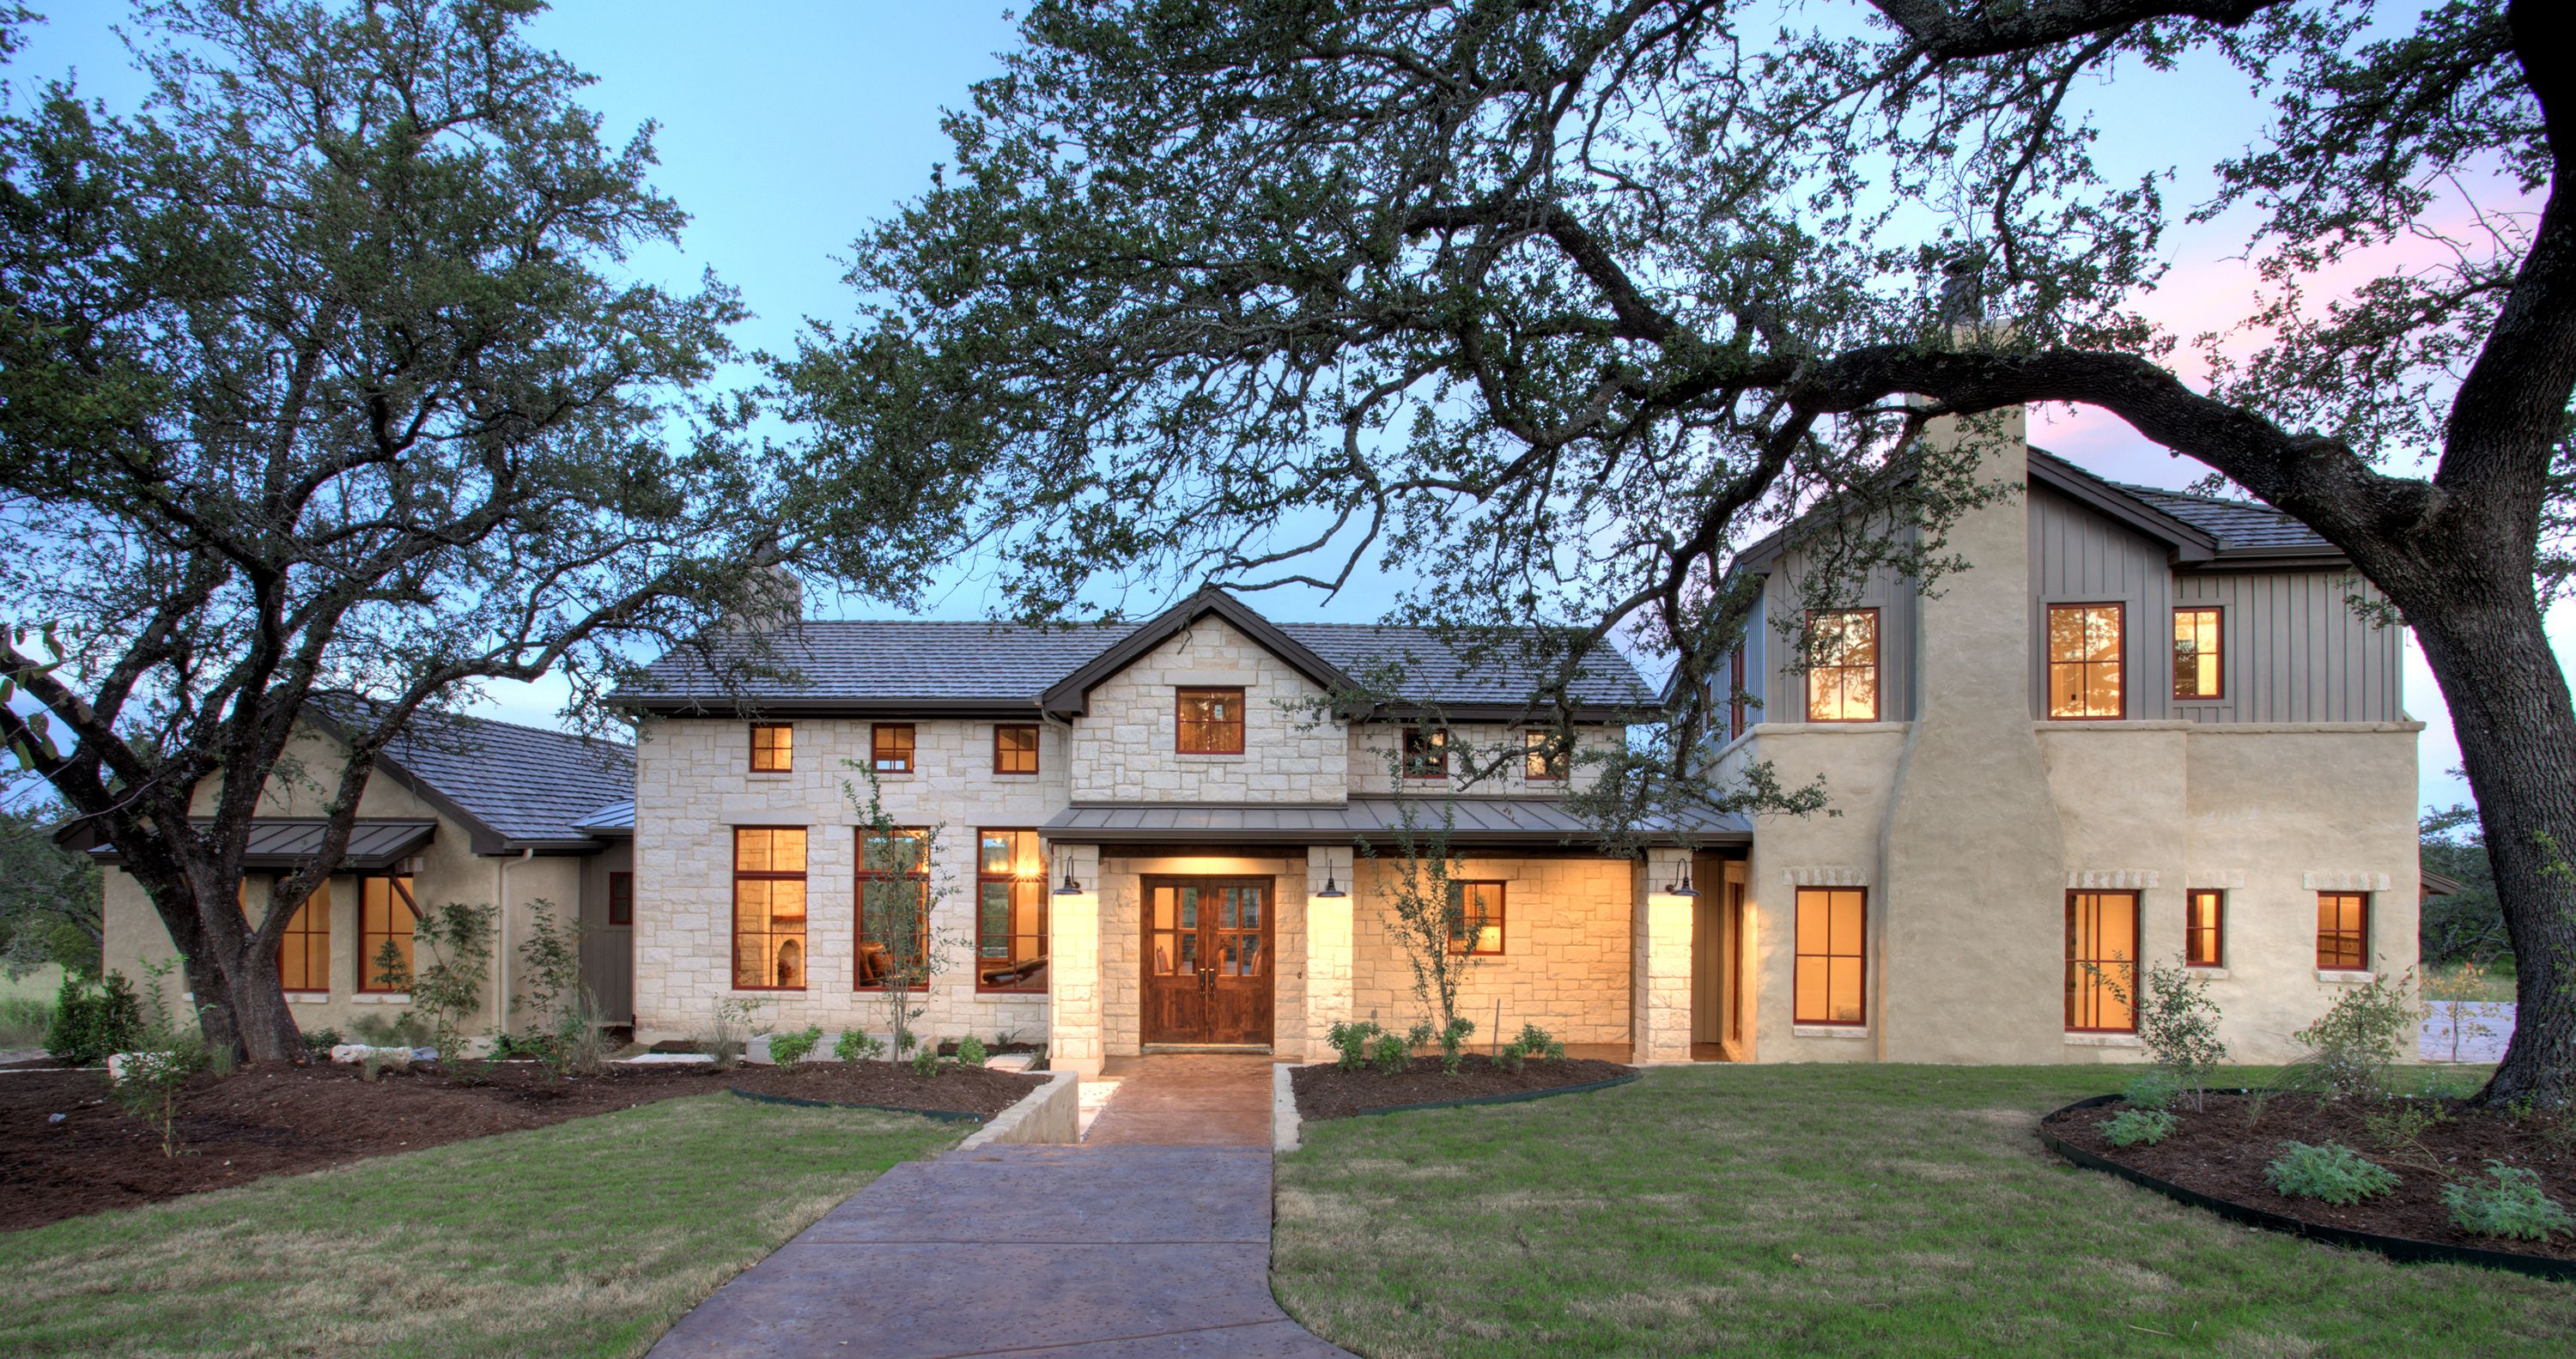 Texas hill country architecture floor plans joy studio for Hill country home plans